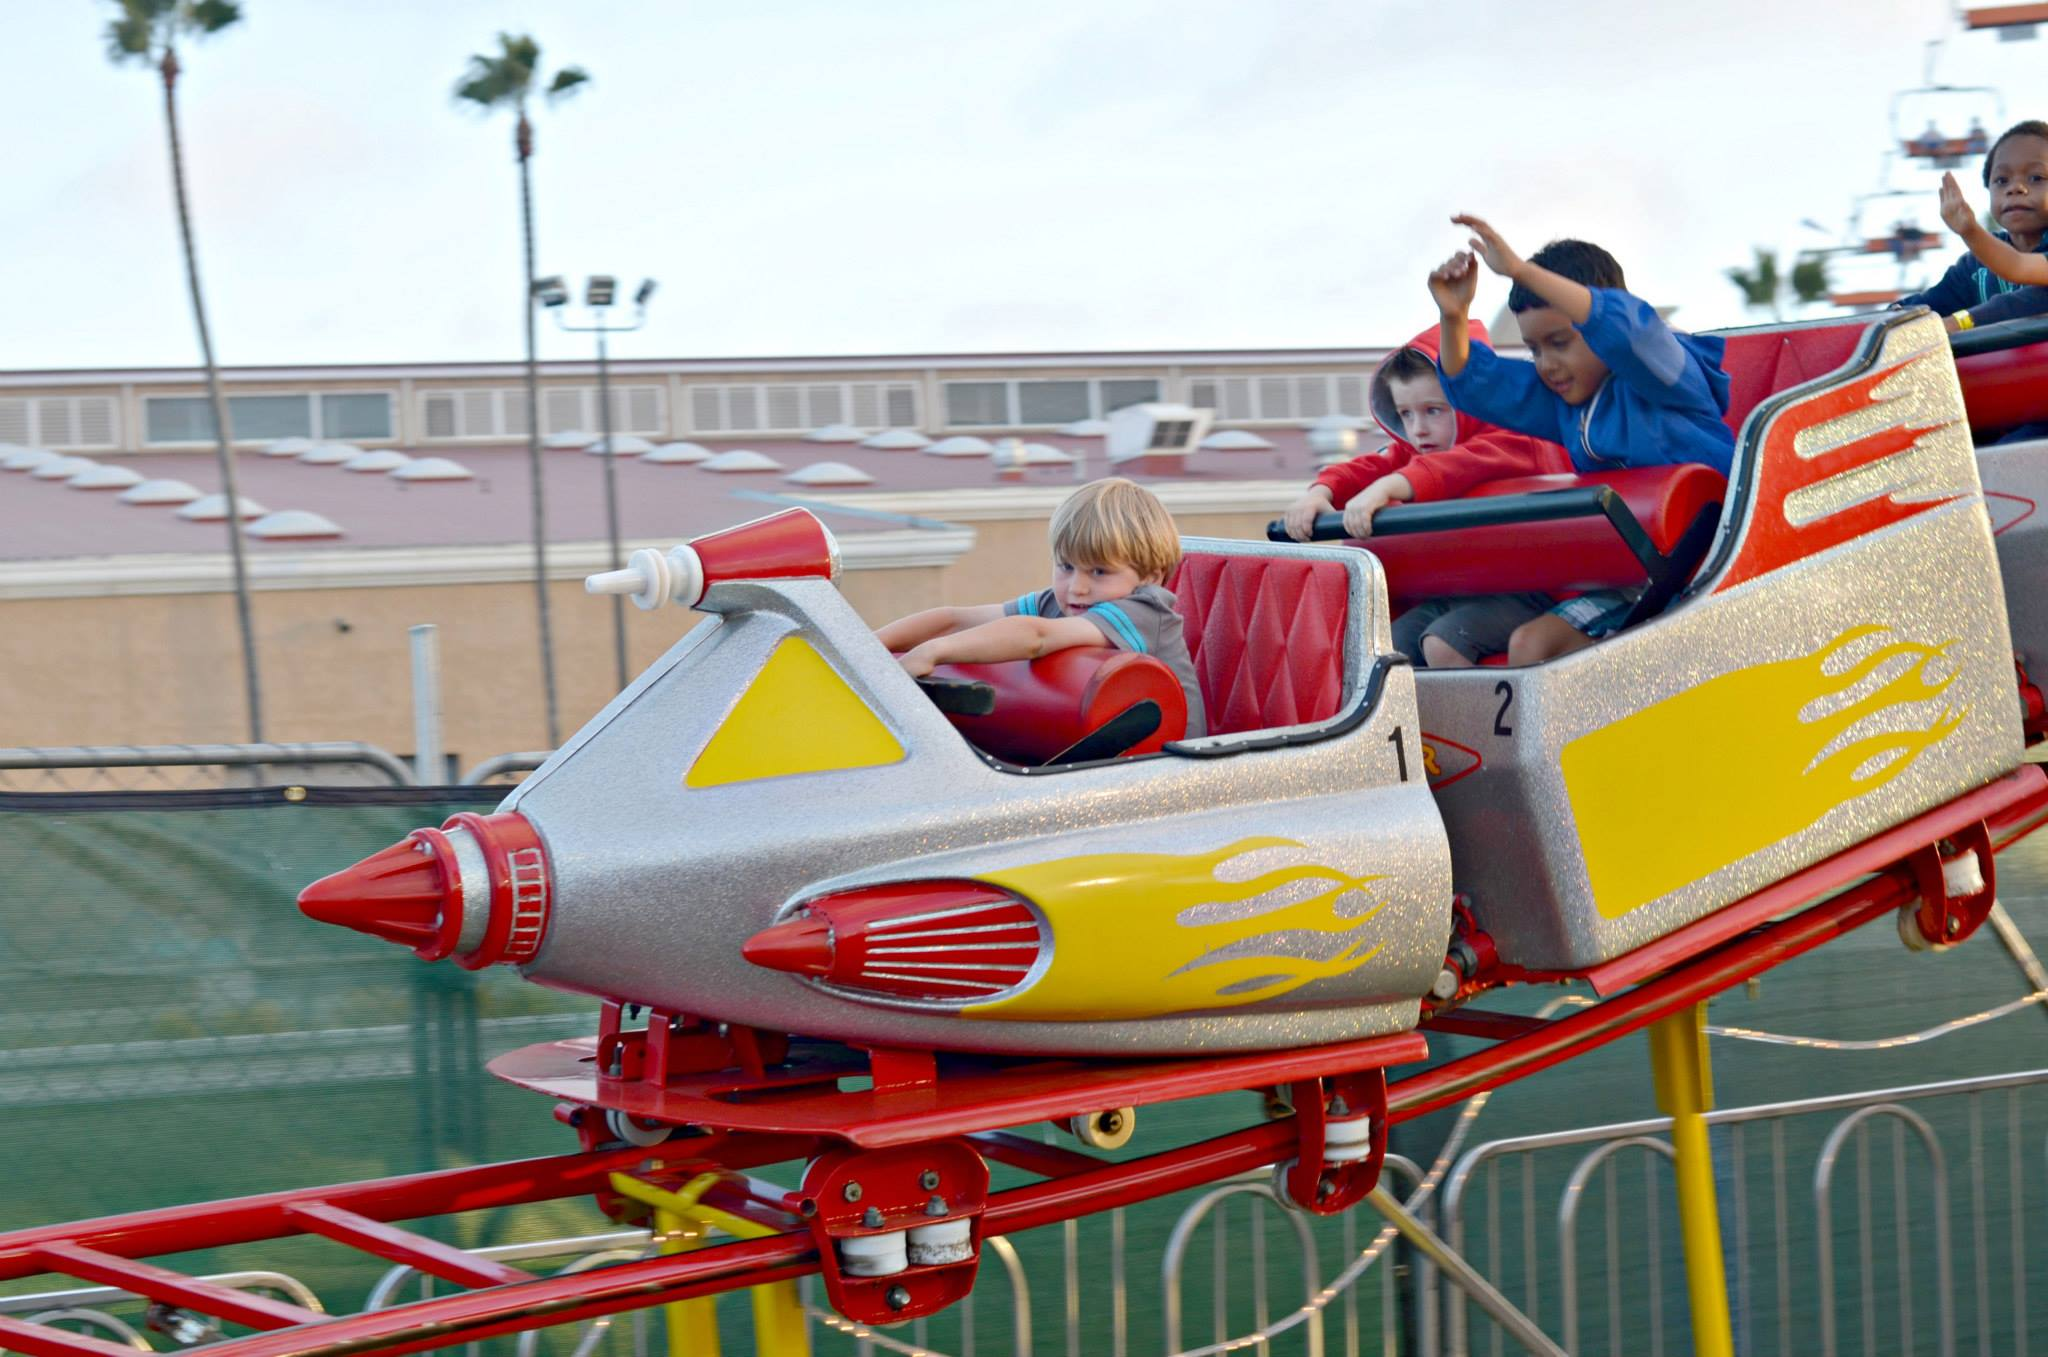 Kids Free Tuesdays at the San Diego County Fair - Ways to Save At the San Diego County Fair